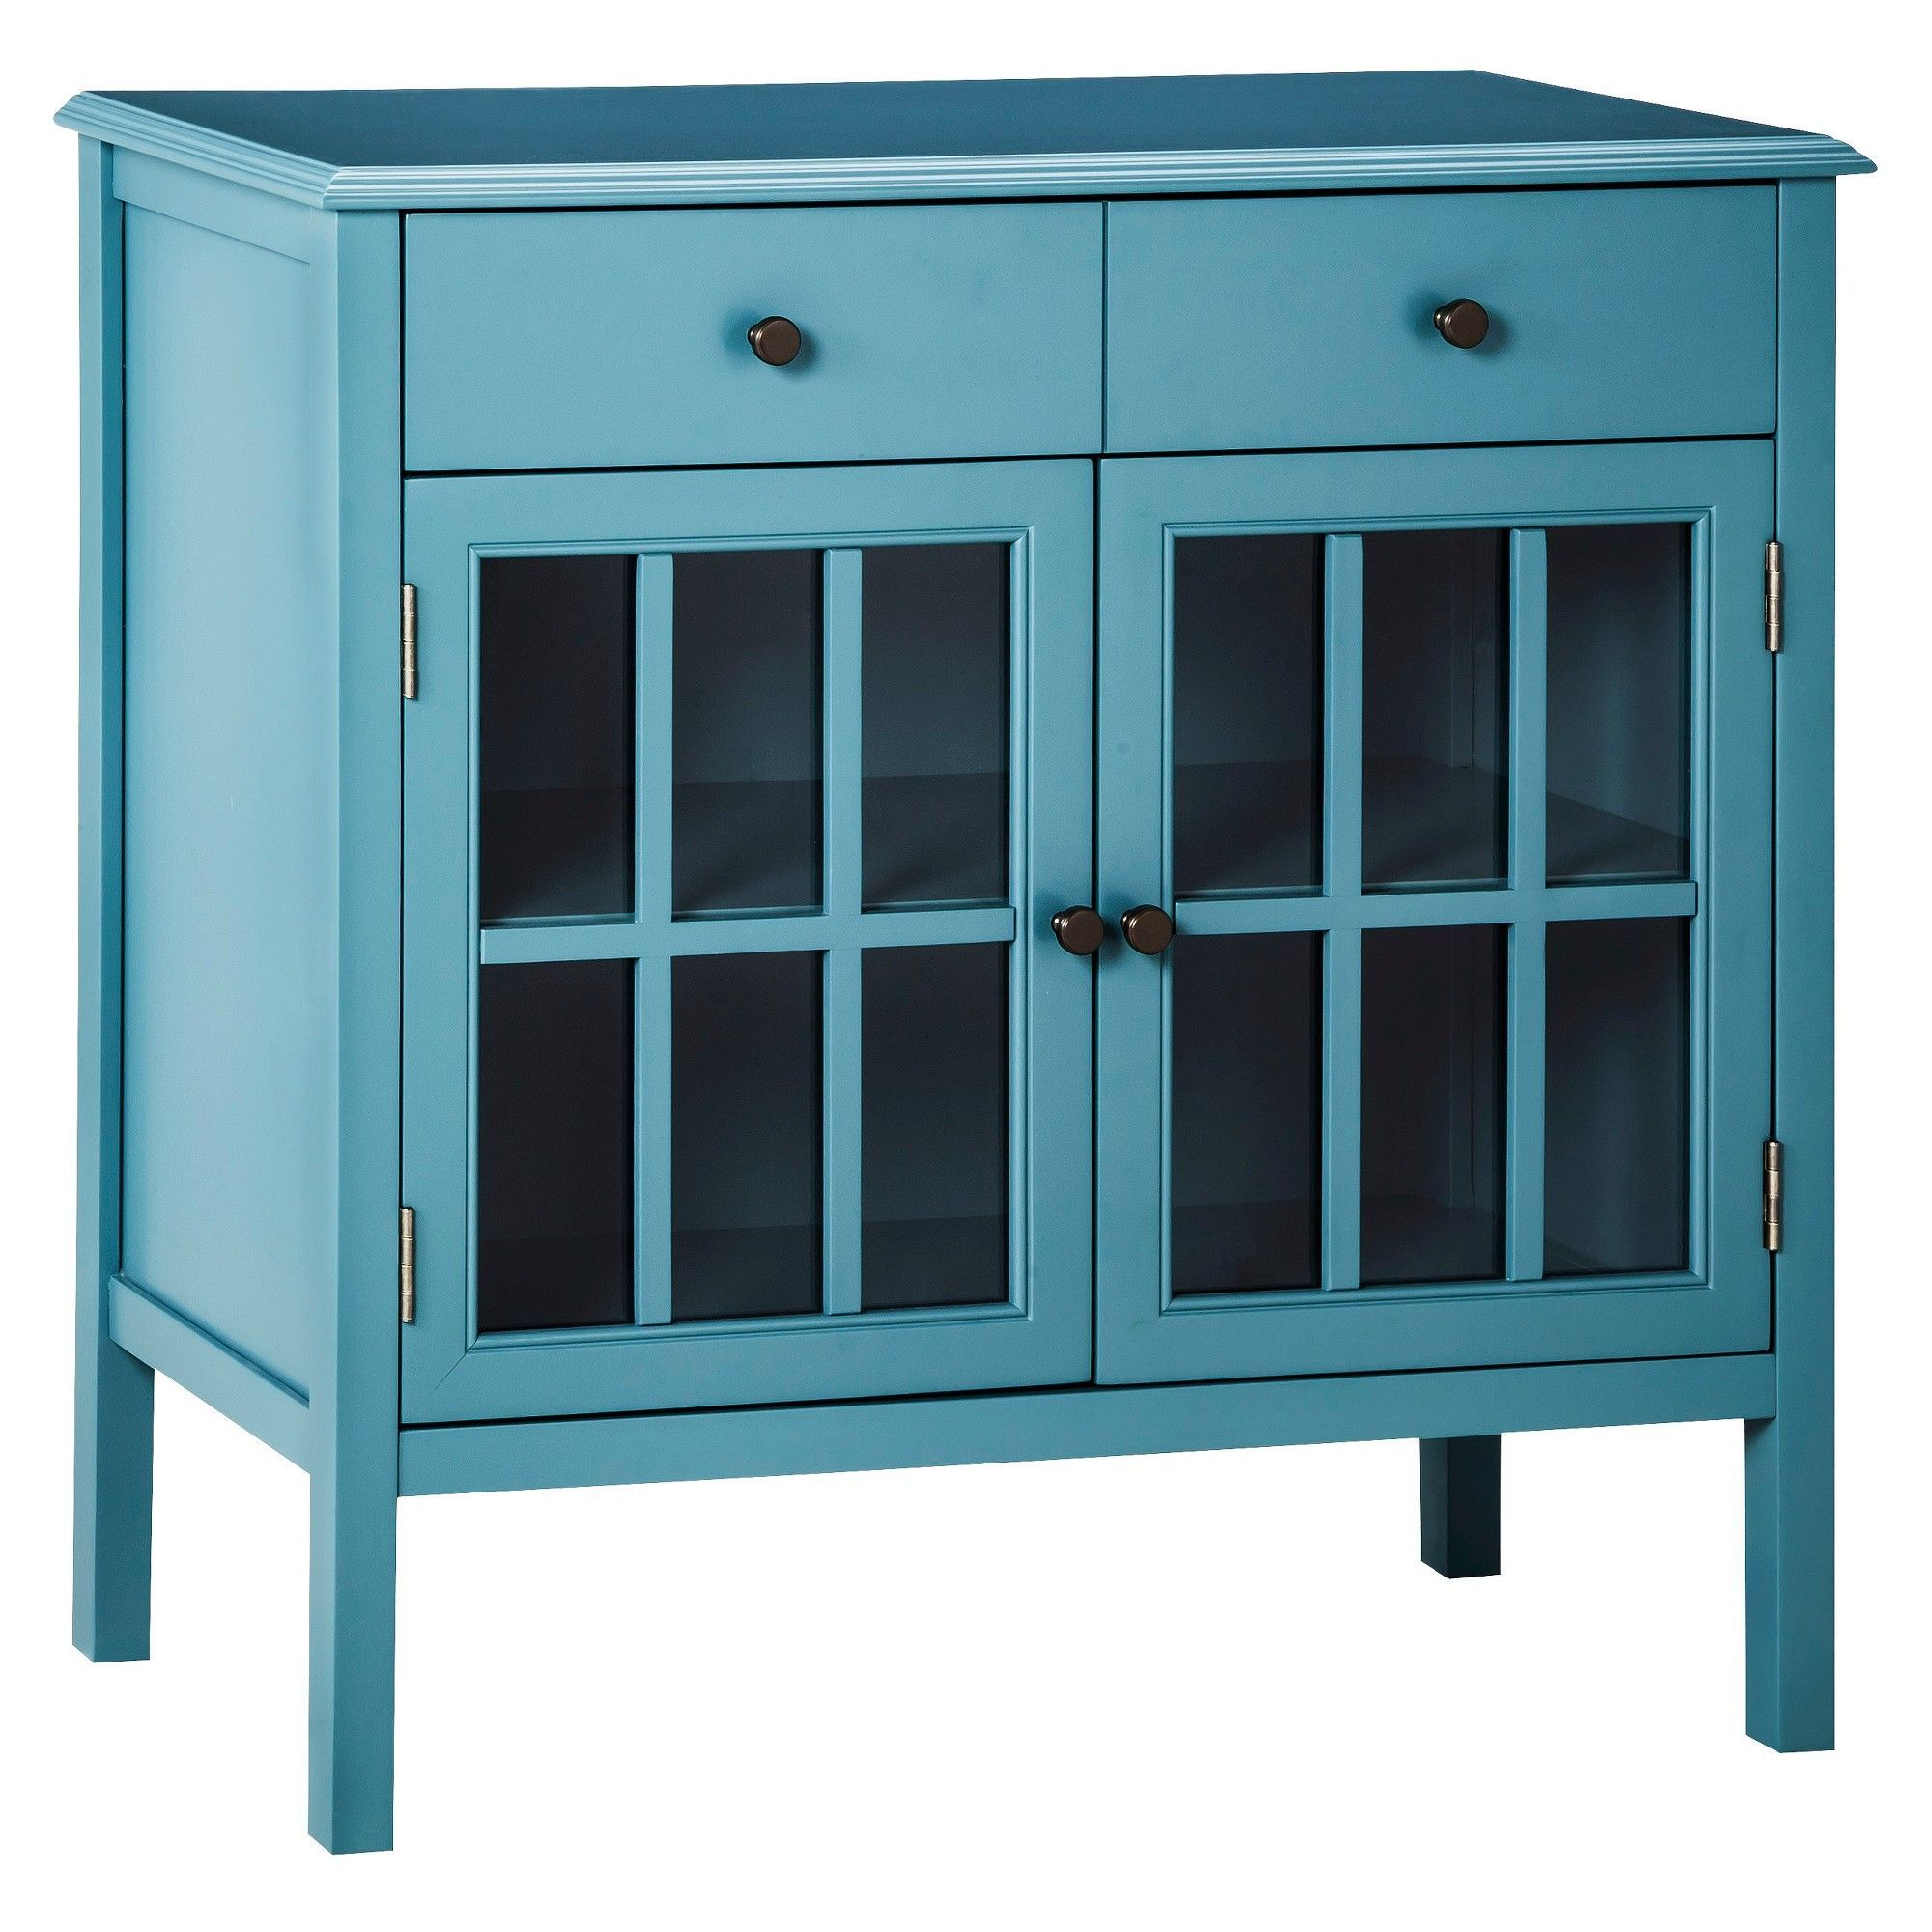 windham door cabinet with drawers threshold blue accent table west elm industrial storage side metal furniture legs modern wine concrete dining room stackable tables wall mounted